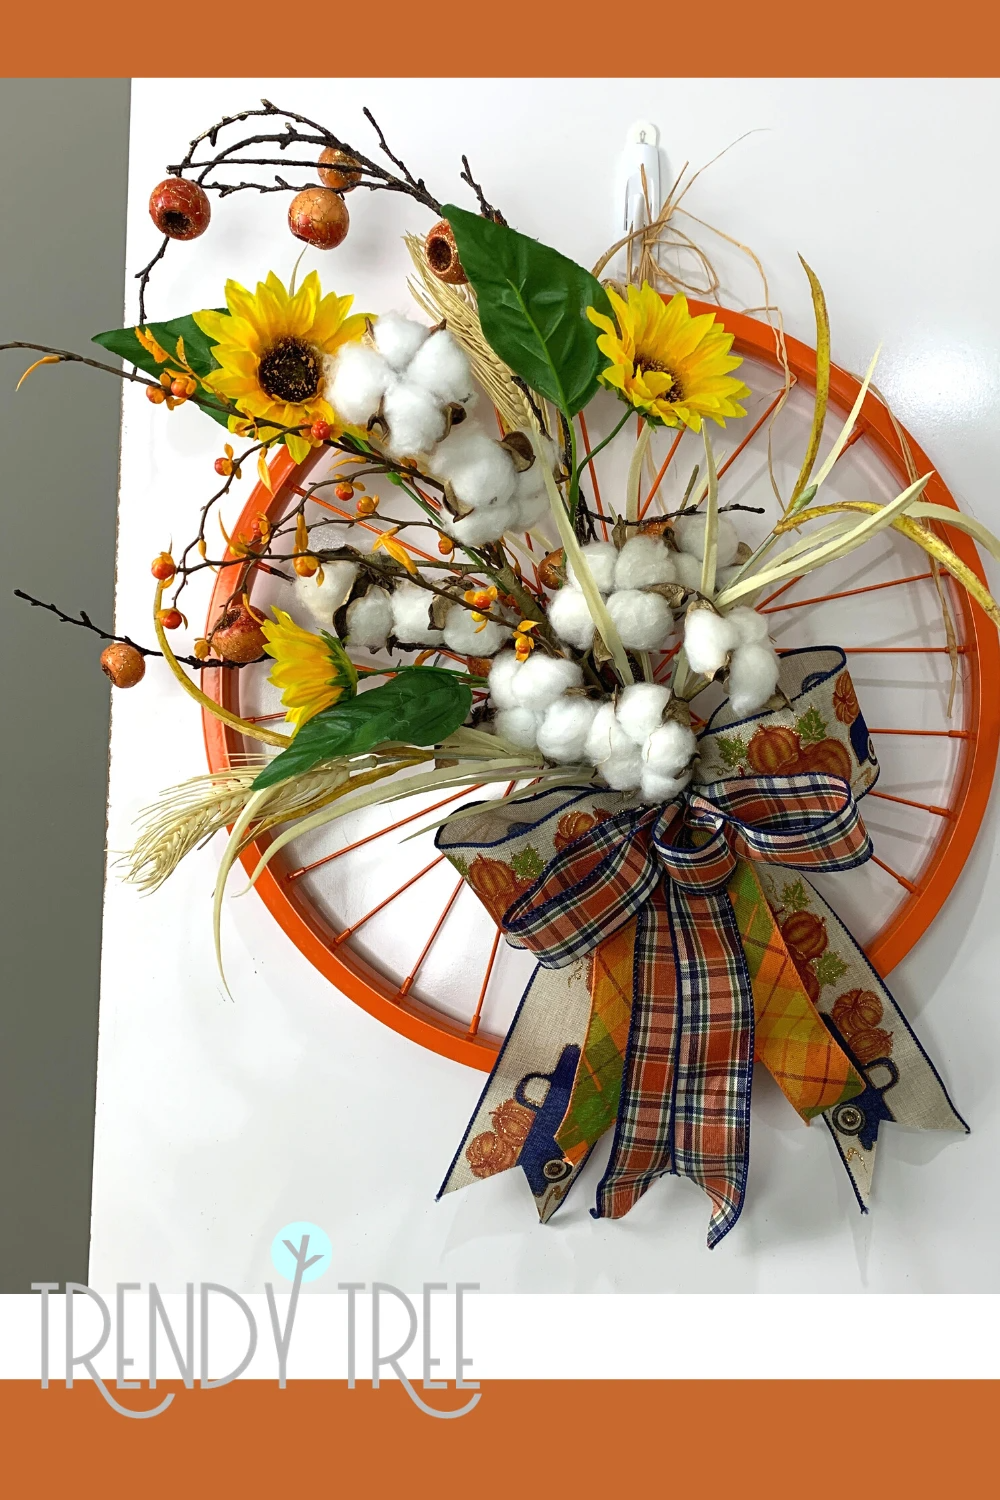 Fall Bicycle Wheel Wreath — Trendy Tree Visit the Trendy Tree blog to see the video tutorial.